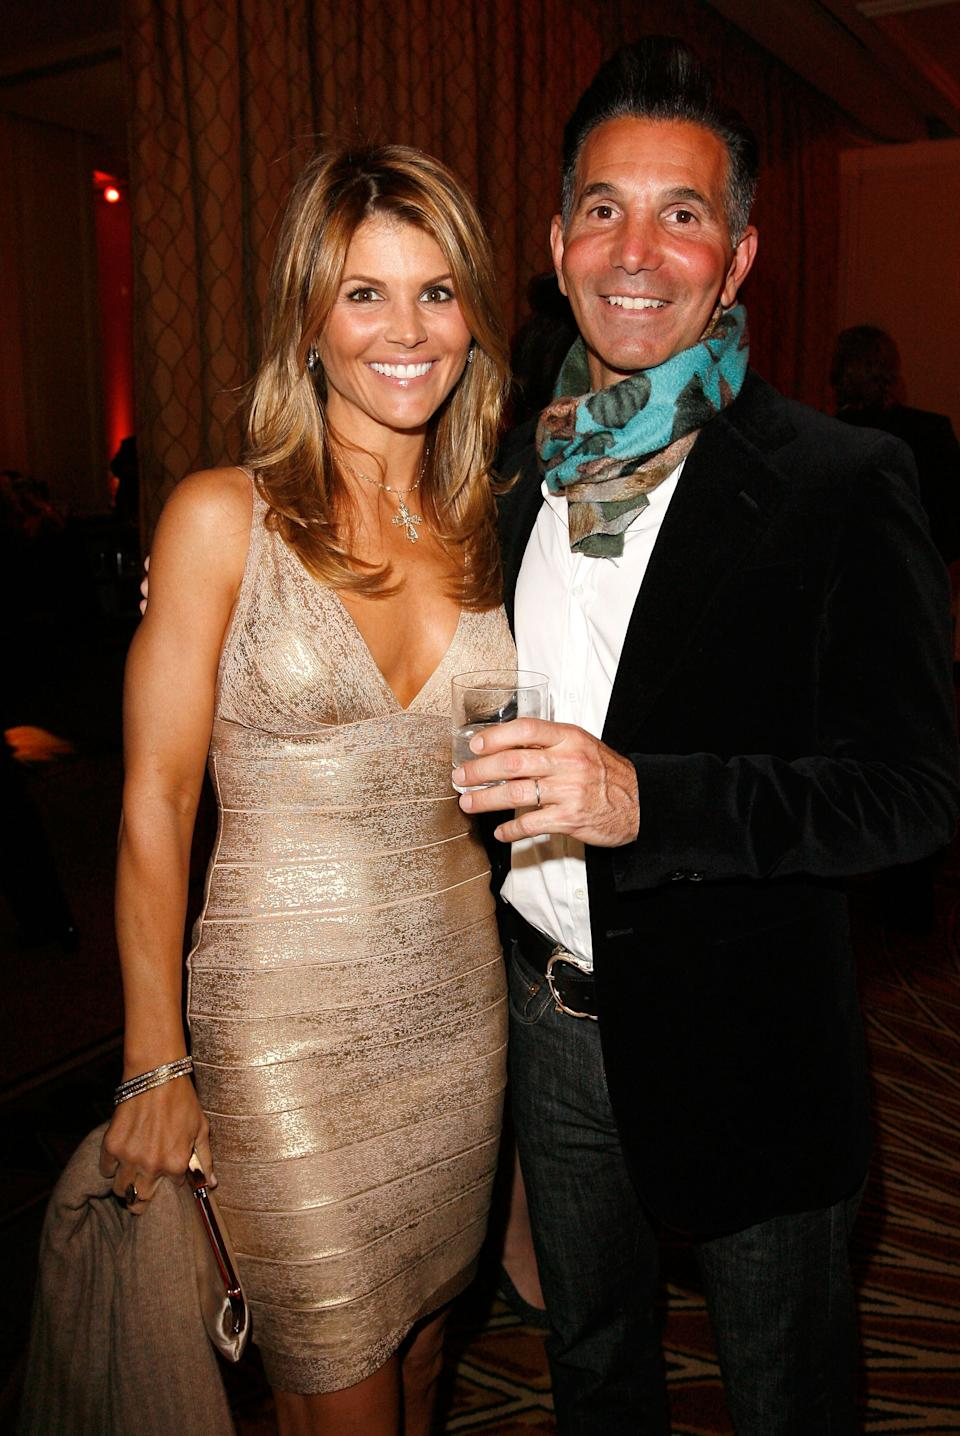 BEVERLY HILLS, CA - FEBRUARY 20:  Actress Lori Loughlin (L) and husband Mossimo Giannulli attend the Saks Fifth Avenue's Unforgettable Evening cocktail reception benefiting Entertainment Industry Foundation's (EIF) Women's Cancer Research Fund held at the Beverly Wishire Hotel on February 20, 2008 in Beverly Hills, California.  (Photo by Donato Sardella/WireImage)